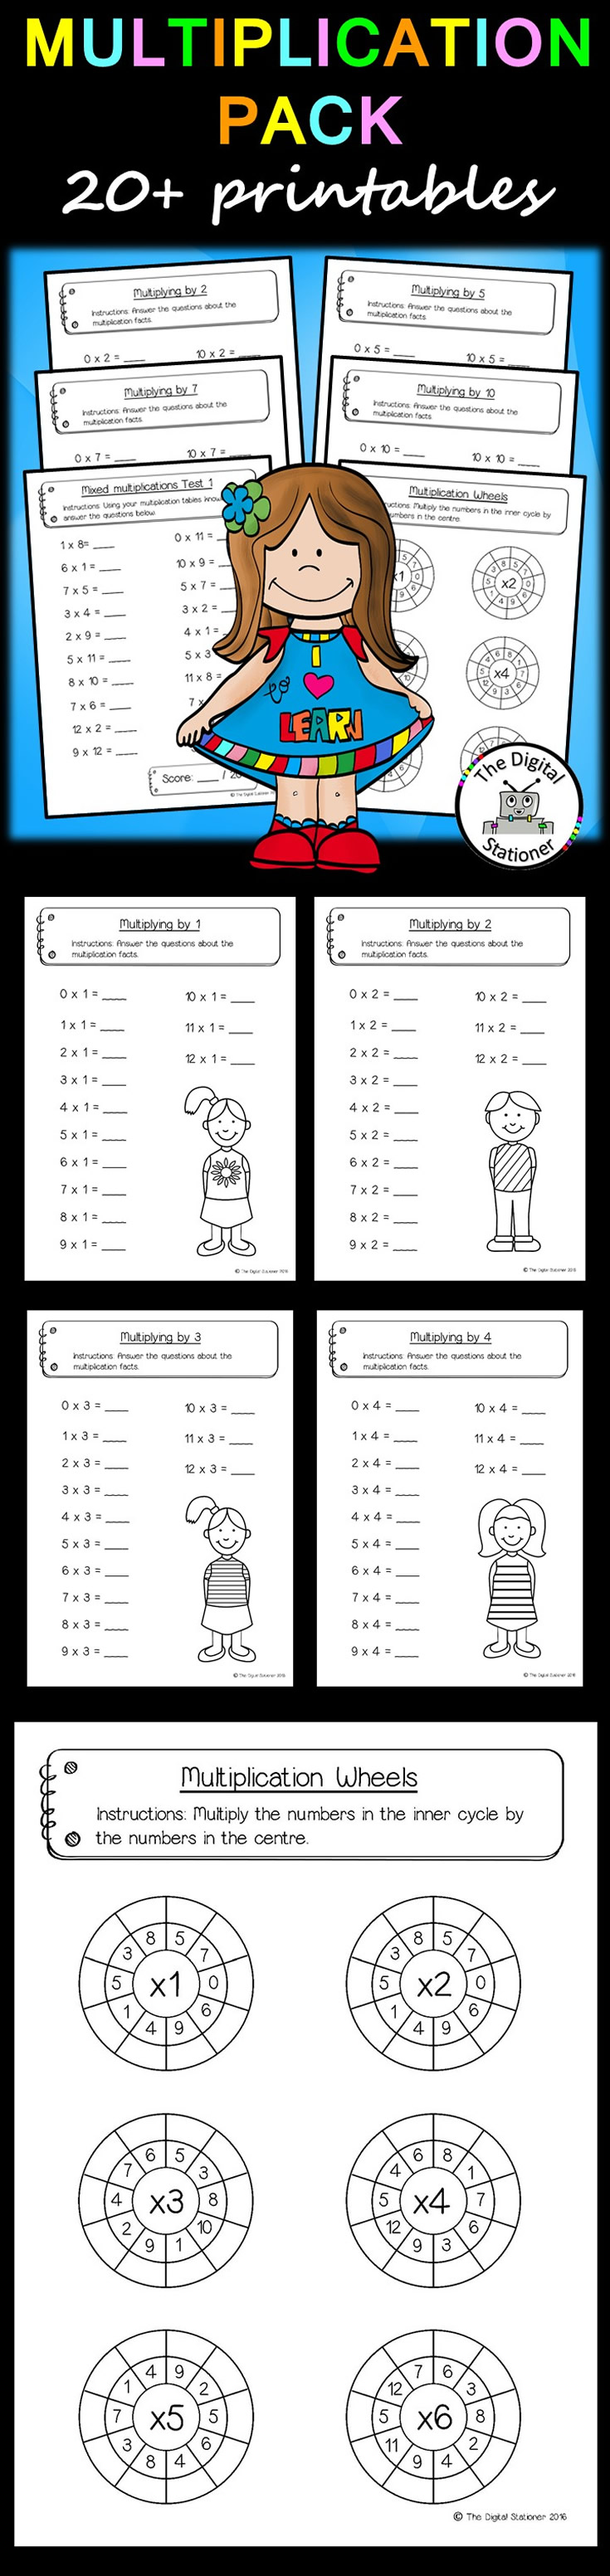 Multiplication Pack 12 X 12 20 Printables Multiplication Math Resources Math